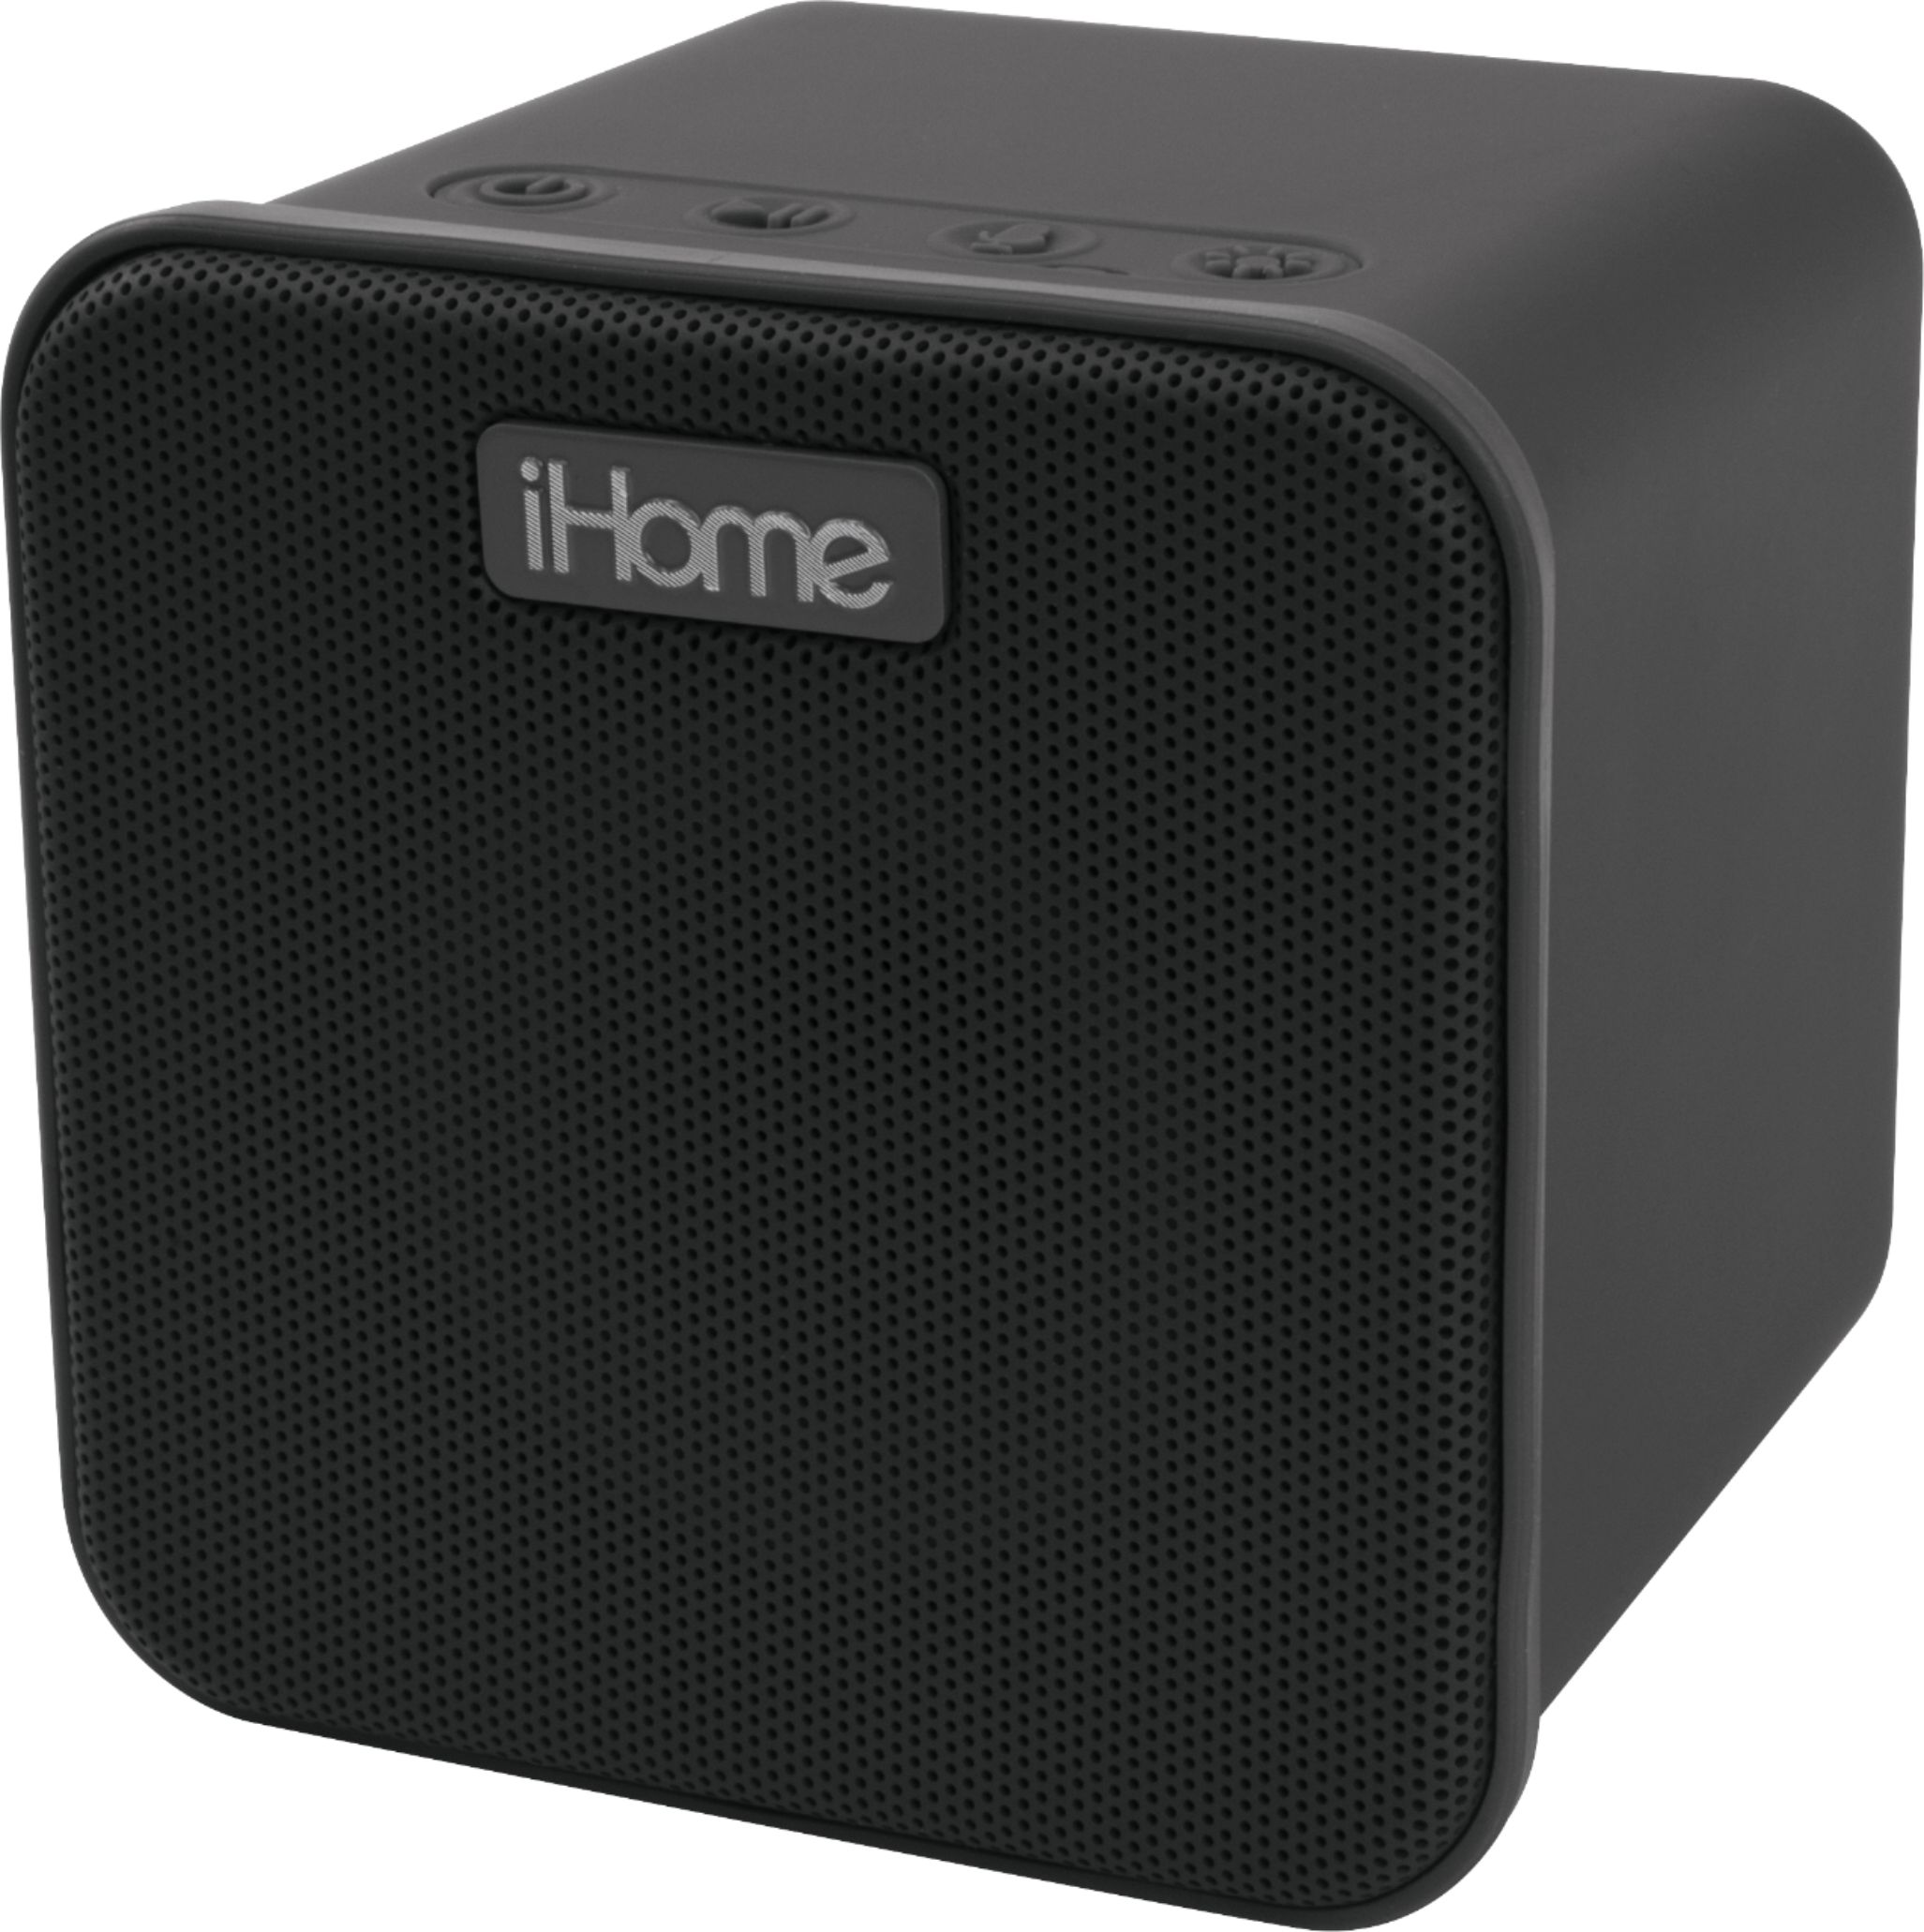 Box Bluetooth Ihome Ibt58 Portable Bluetooth Speaker With Siri Voice Assistant Black